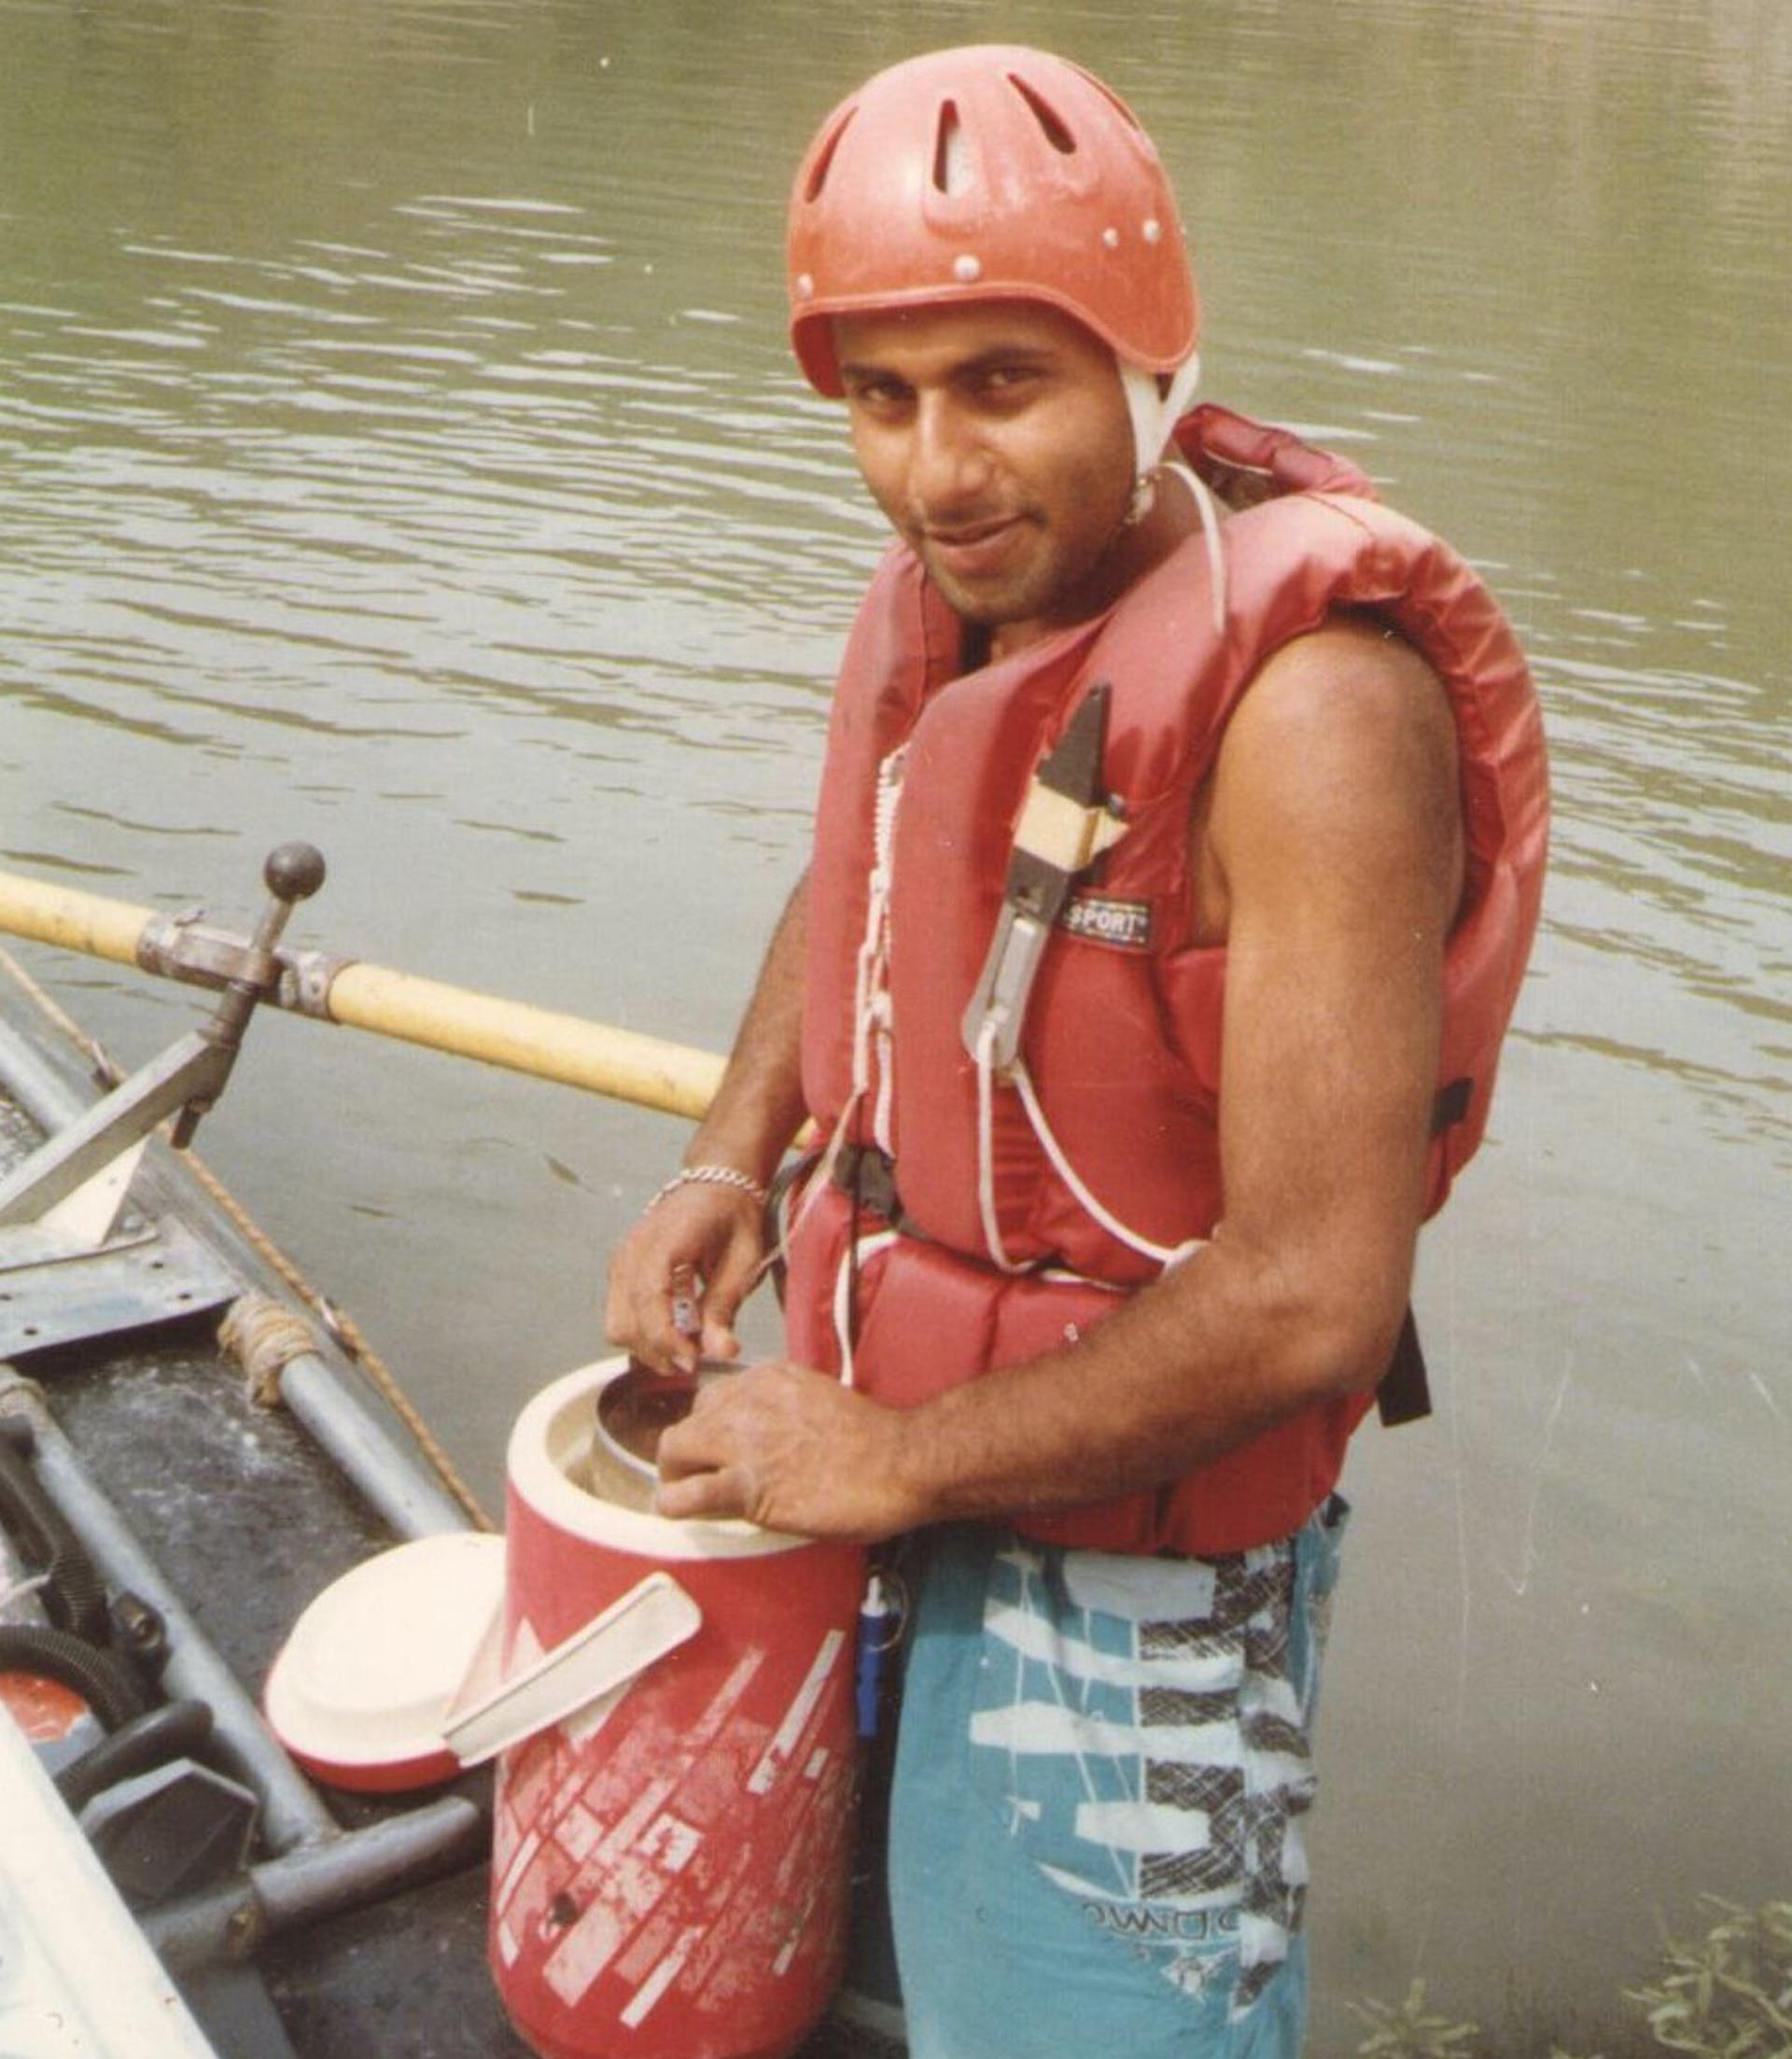 Akshay Kumar in 1990, a few months before the expedition. Courtesy: Salil Kumar